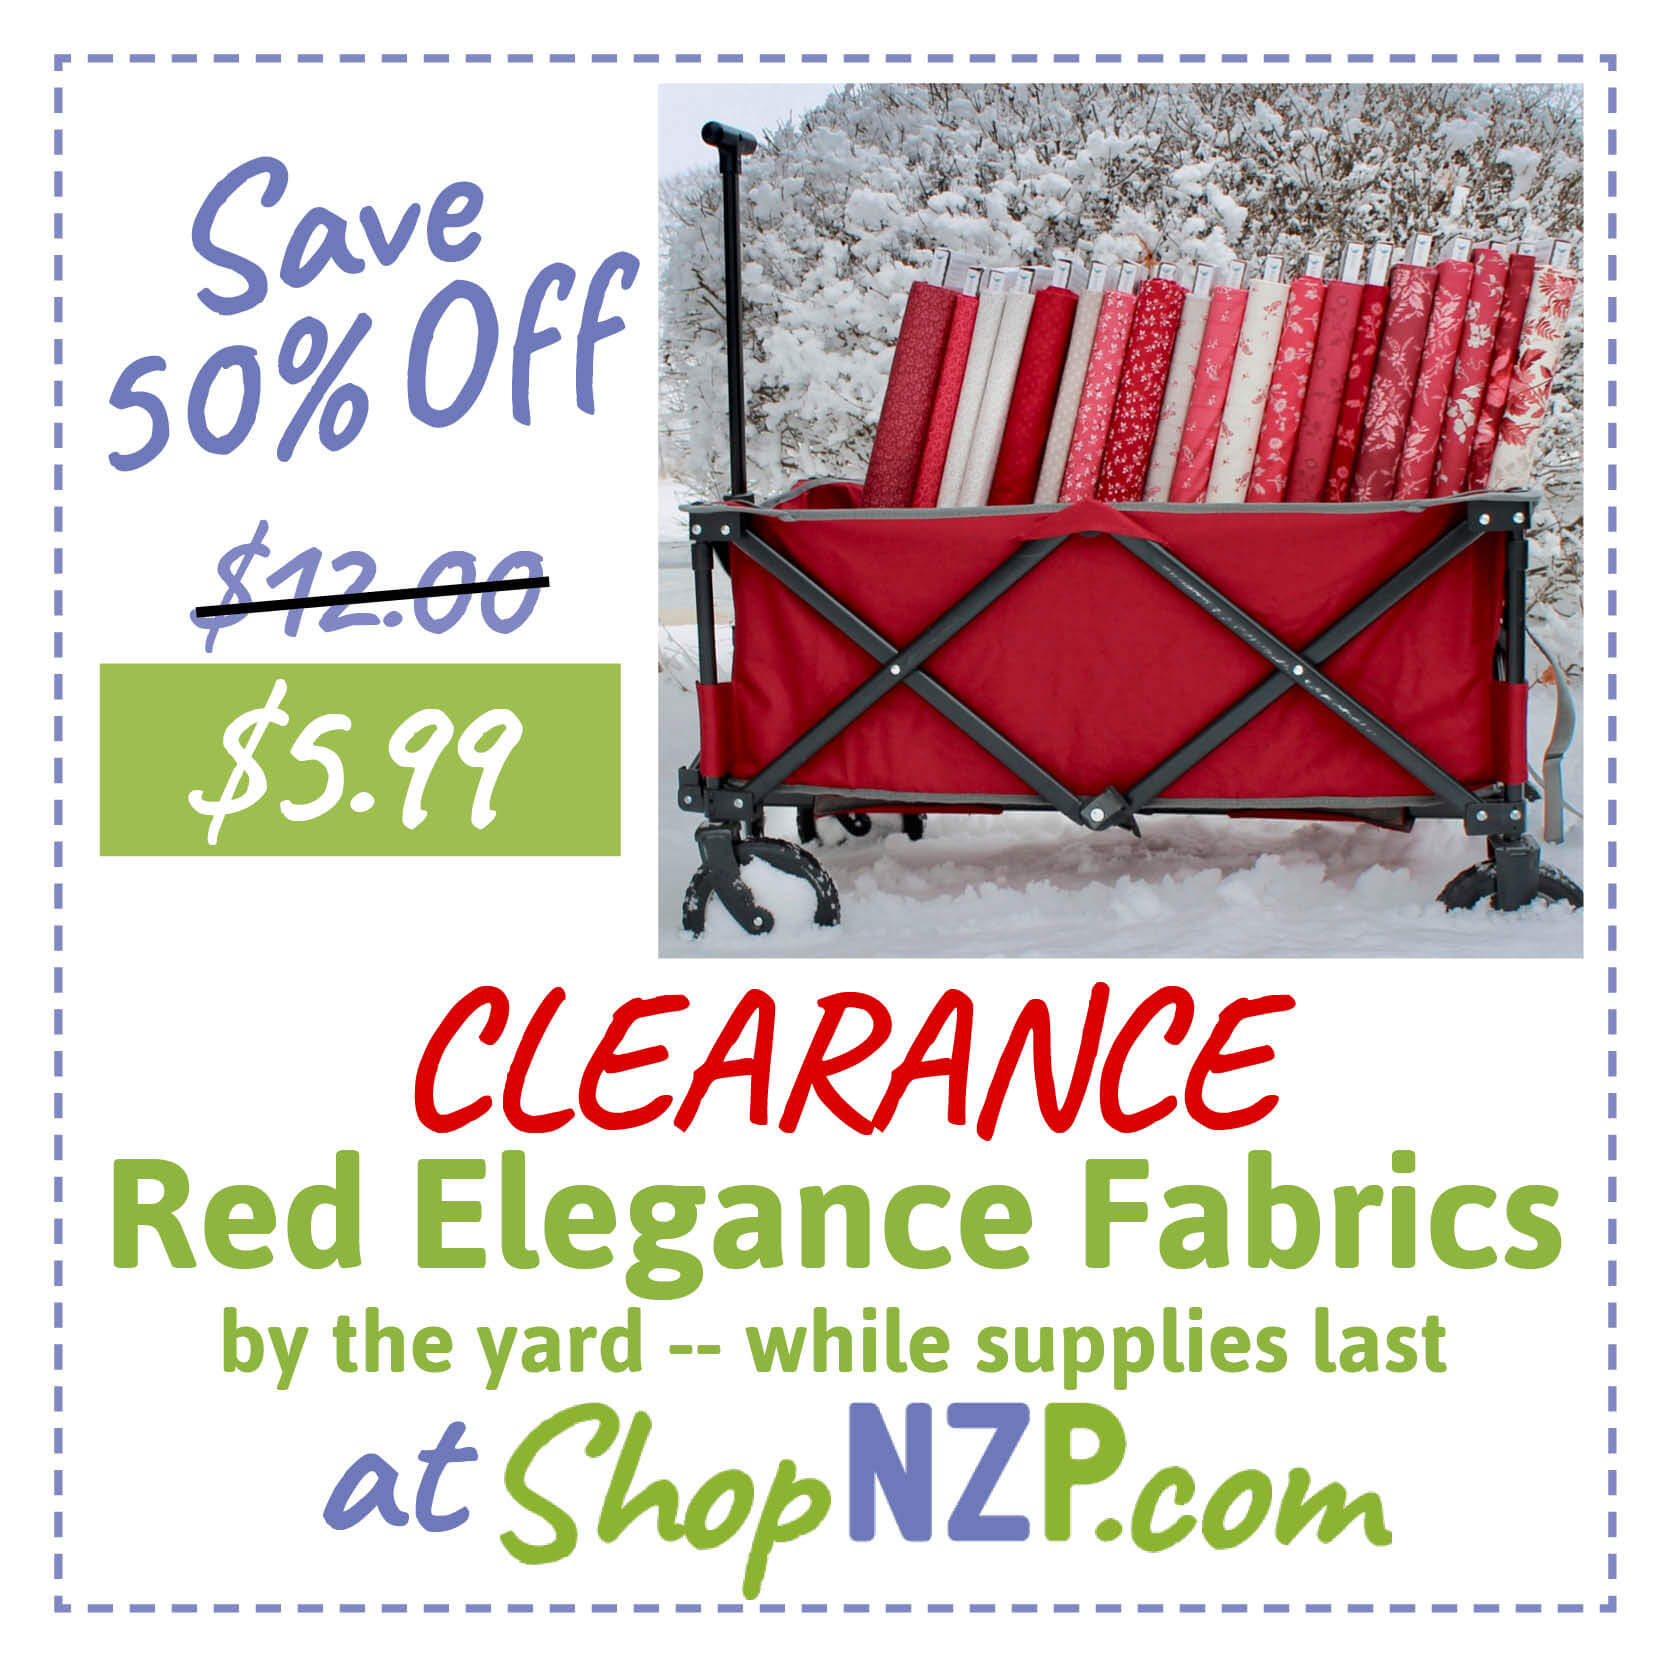 Save 50 Percent Off Red Elegance Fabric By the Yard at Nancy Zieman Productions at ShopNZP